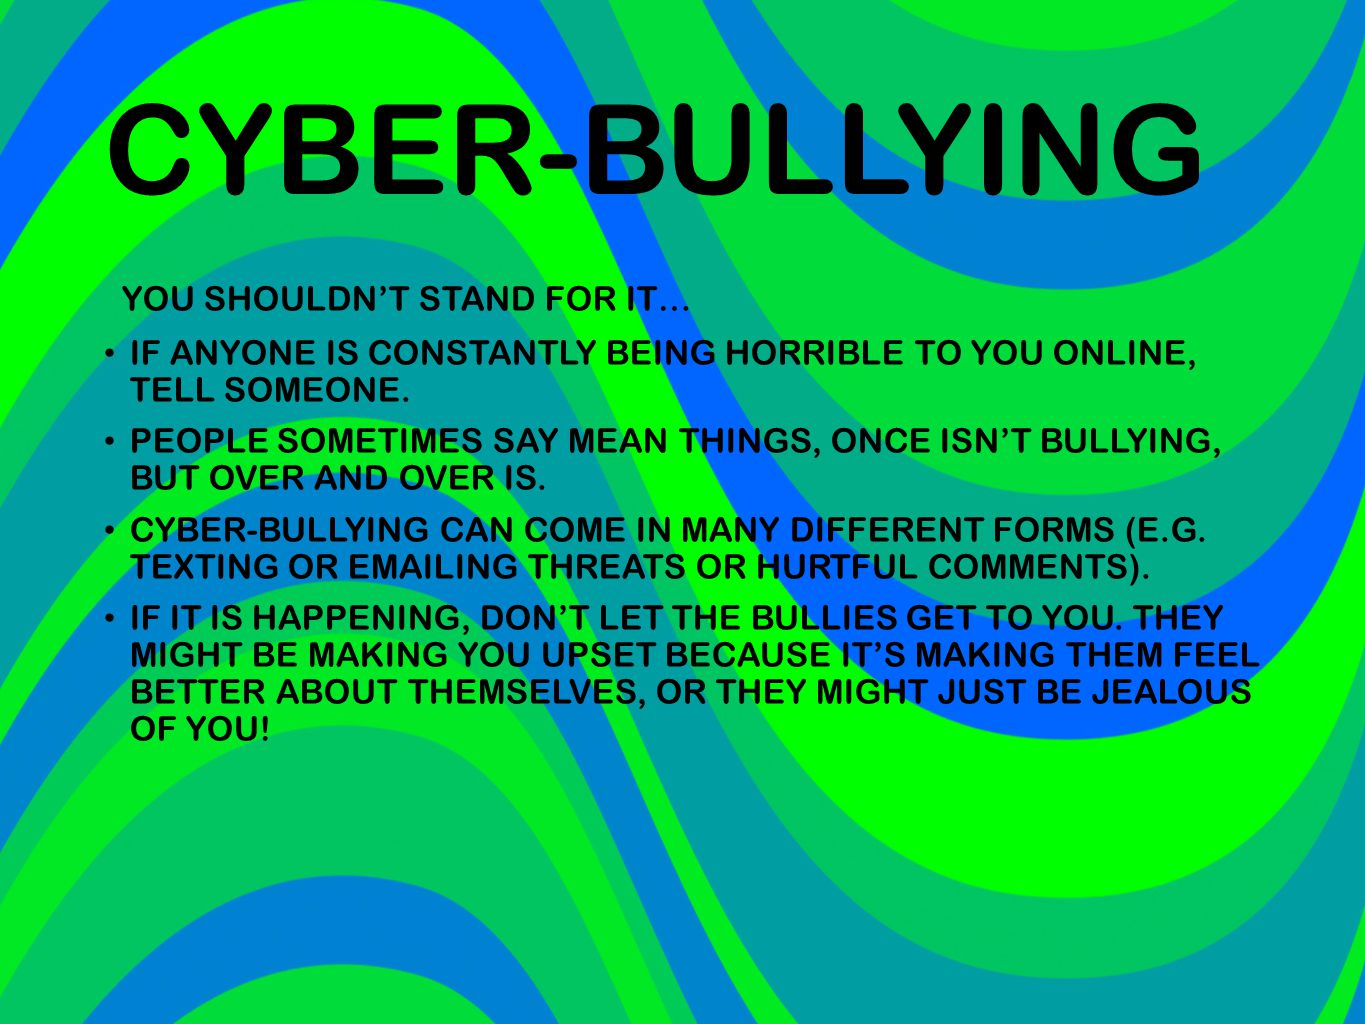 CYBER-BULLYING YOU SHOULDN'T STAND FOR IT… IF ANYONE IS CONSTANTLY BEING HORRIBLE TO YOU ONLINE, TELL SOMEONE. PEOPLE SOMETIMES SAY MEAN THINGS, ONCE